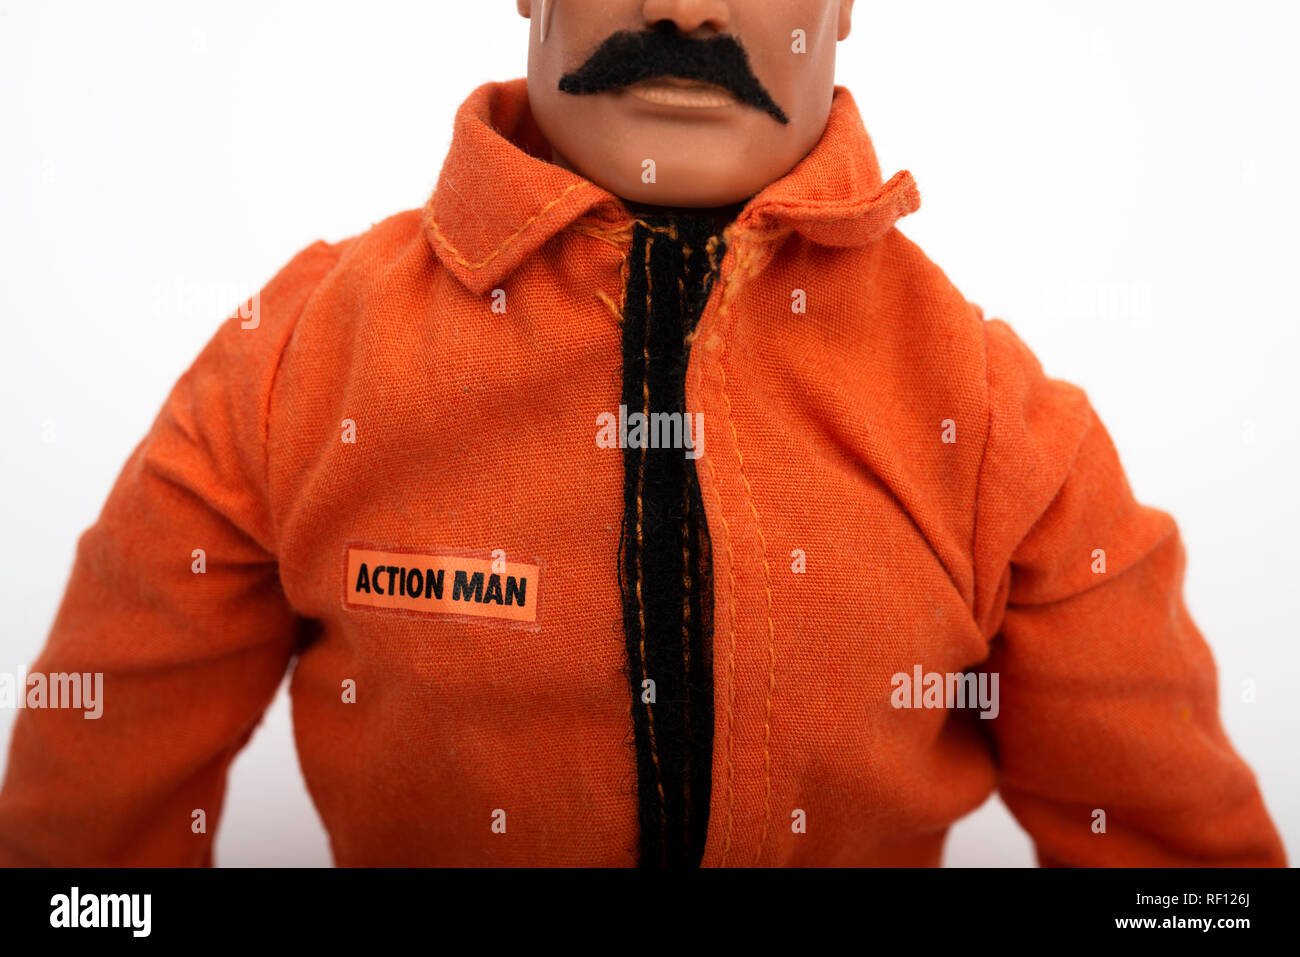 Action Man with homemade moustache - Stock Image